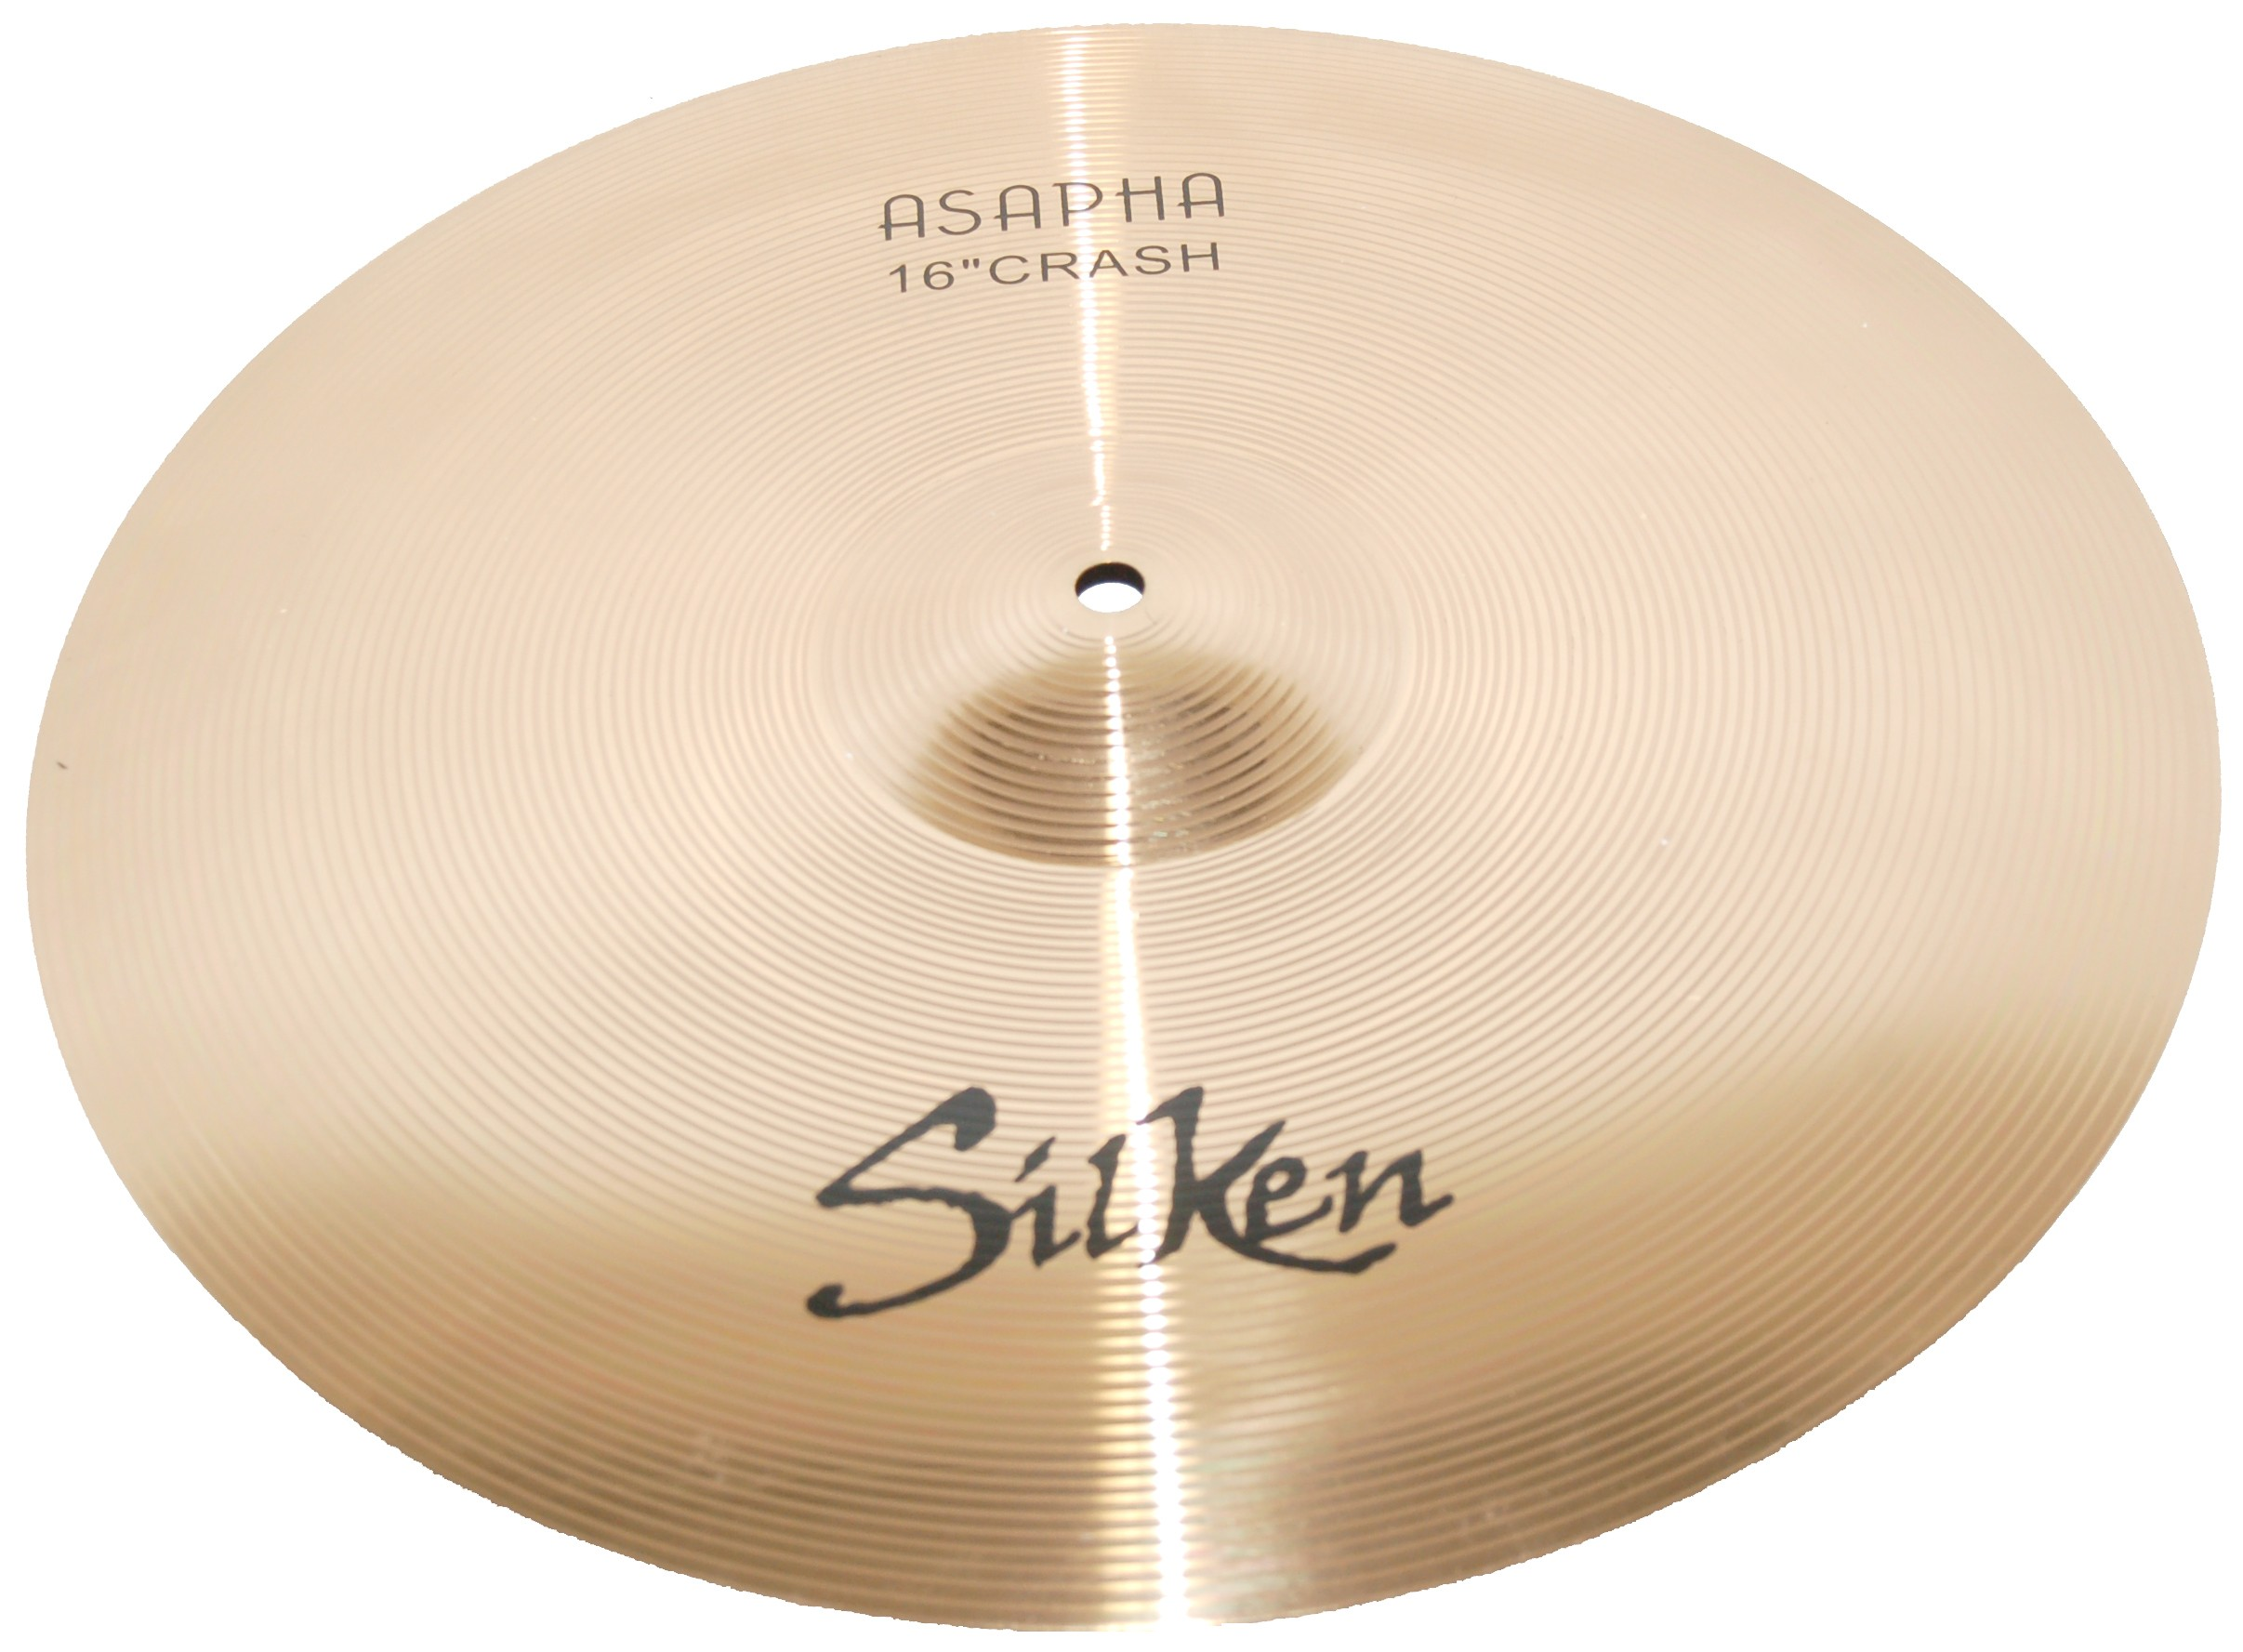 "SILKEN B8 16"" CRASH CYMBAL"